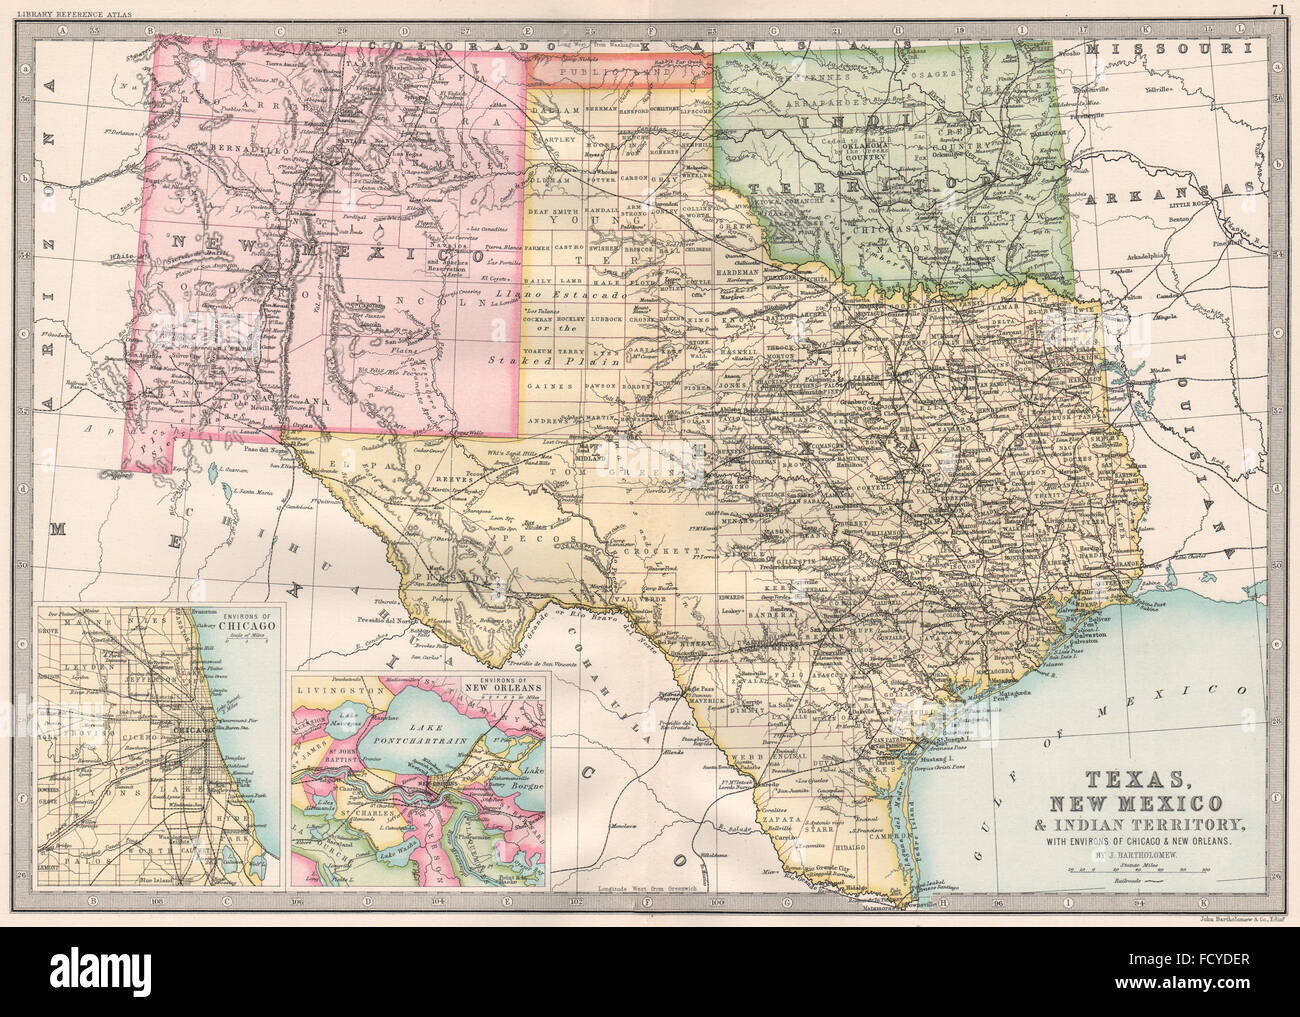 USA SOUTH:Texas New Mexico Indian Territory &